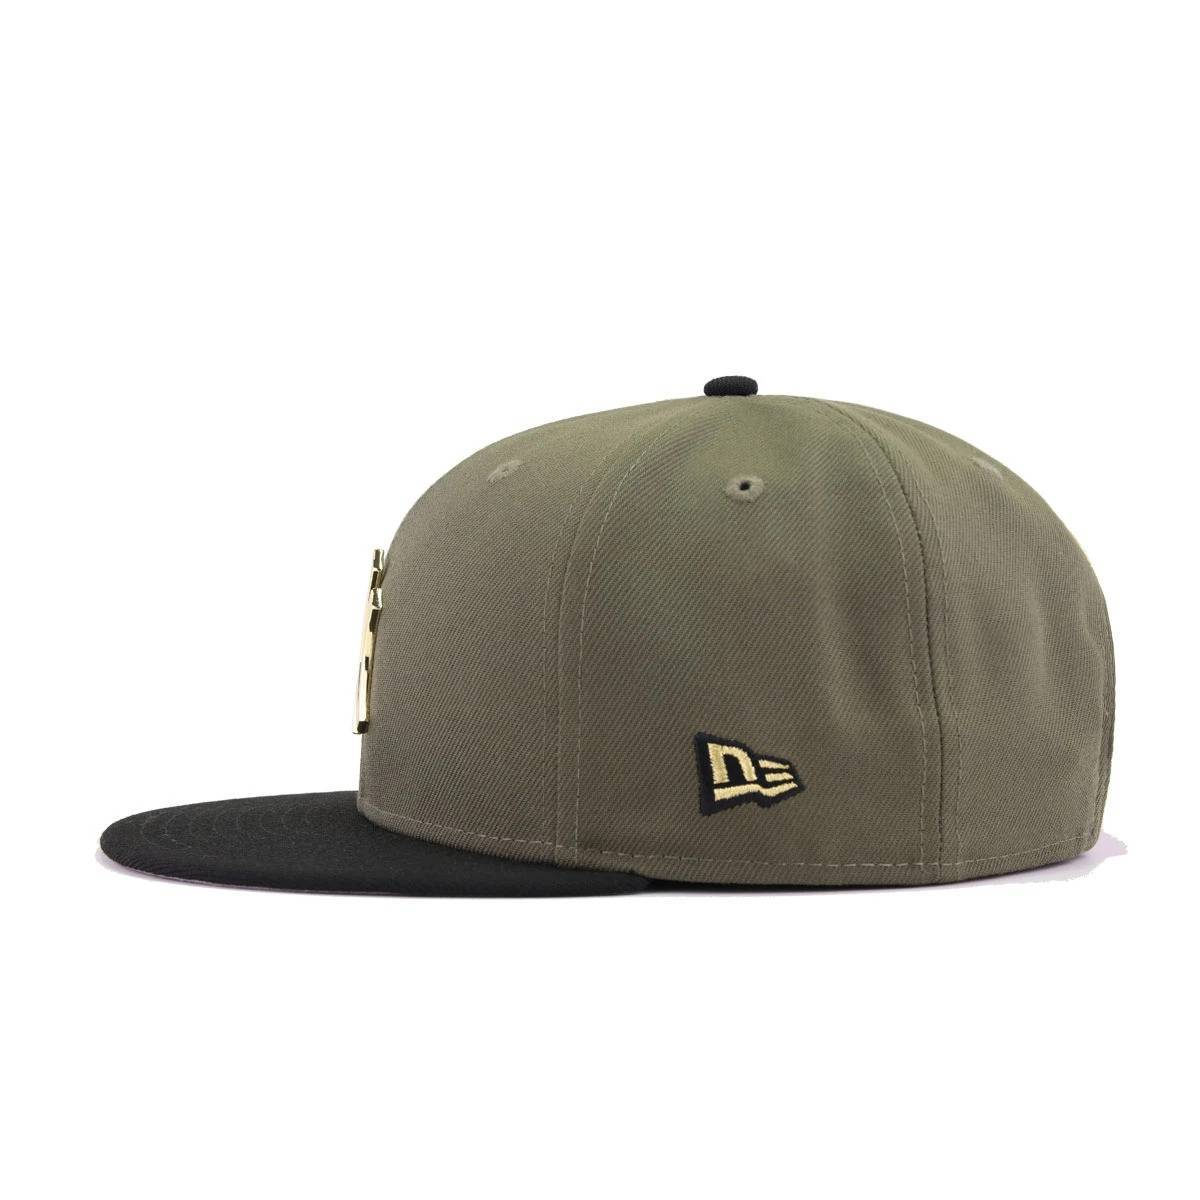 New York Yankees New Olive Black Gold Metal Badge New Era 9Fifty Snapback